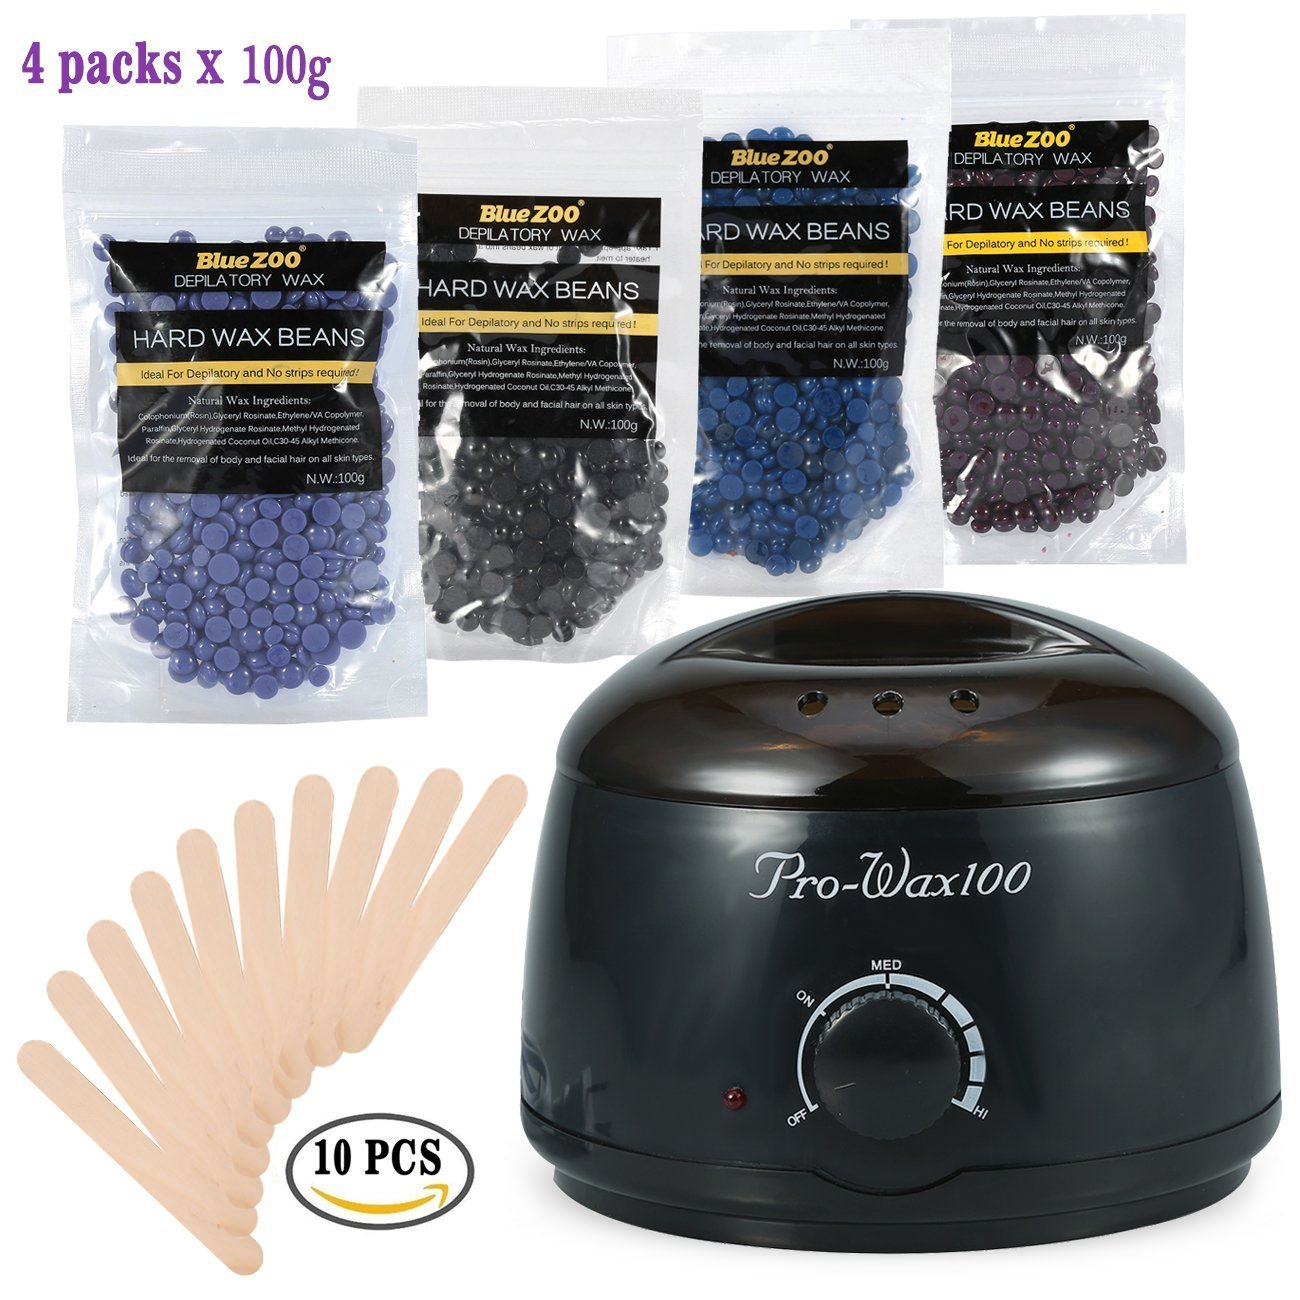 500ML Hair Removal Hot Paraffin Warmer Waxing Heater + 100g/Bag 4 Different Types of Hard Wax Beans Special for Men and Women Depilatory Use (Black) ZJchao